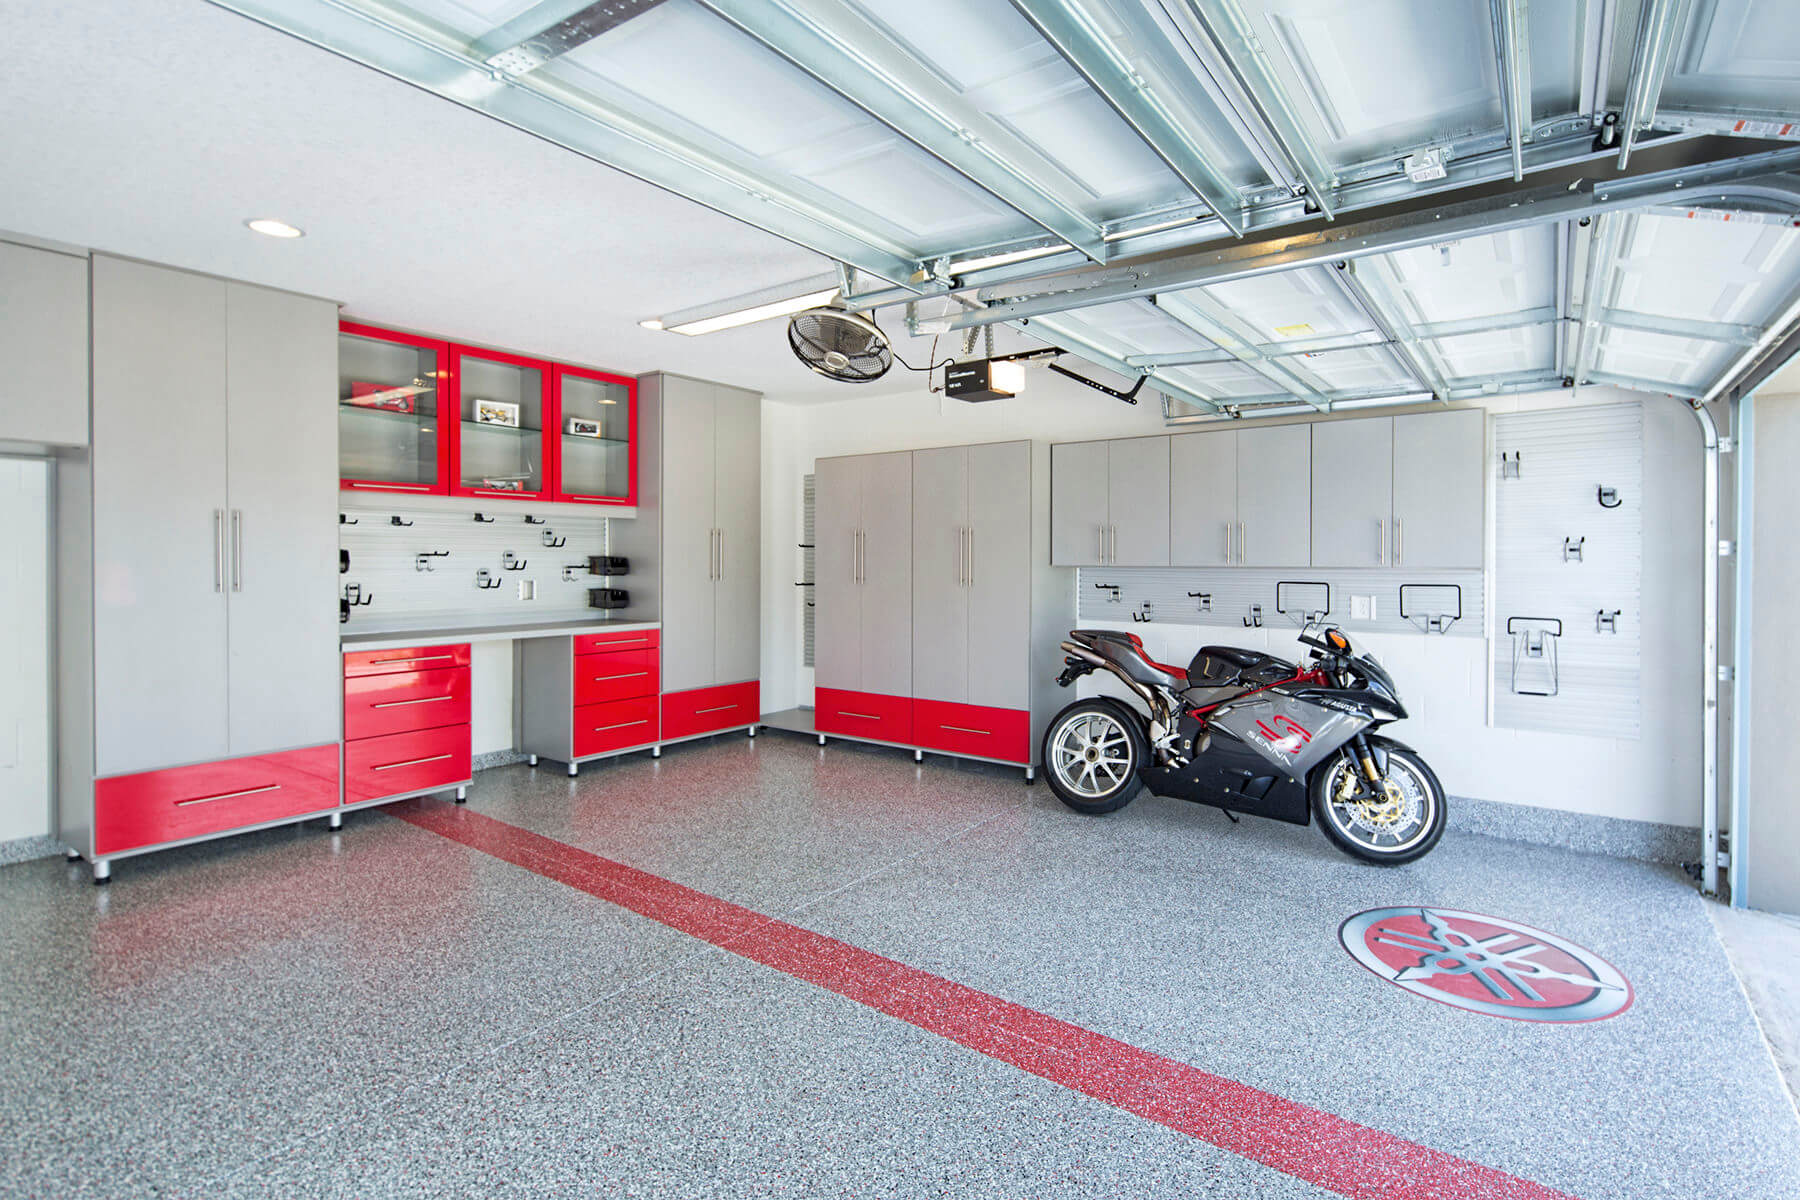 This garage features the combination of red and gray in its melamine cabinets and storage units. The industrial steely gray is easily set off by the bold loud color of red creating a contrasting overall look for the garage.